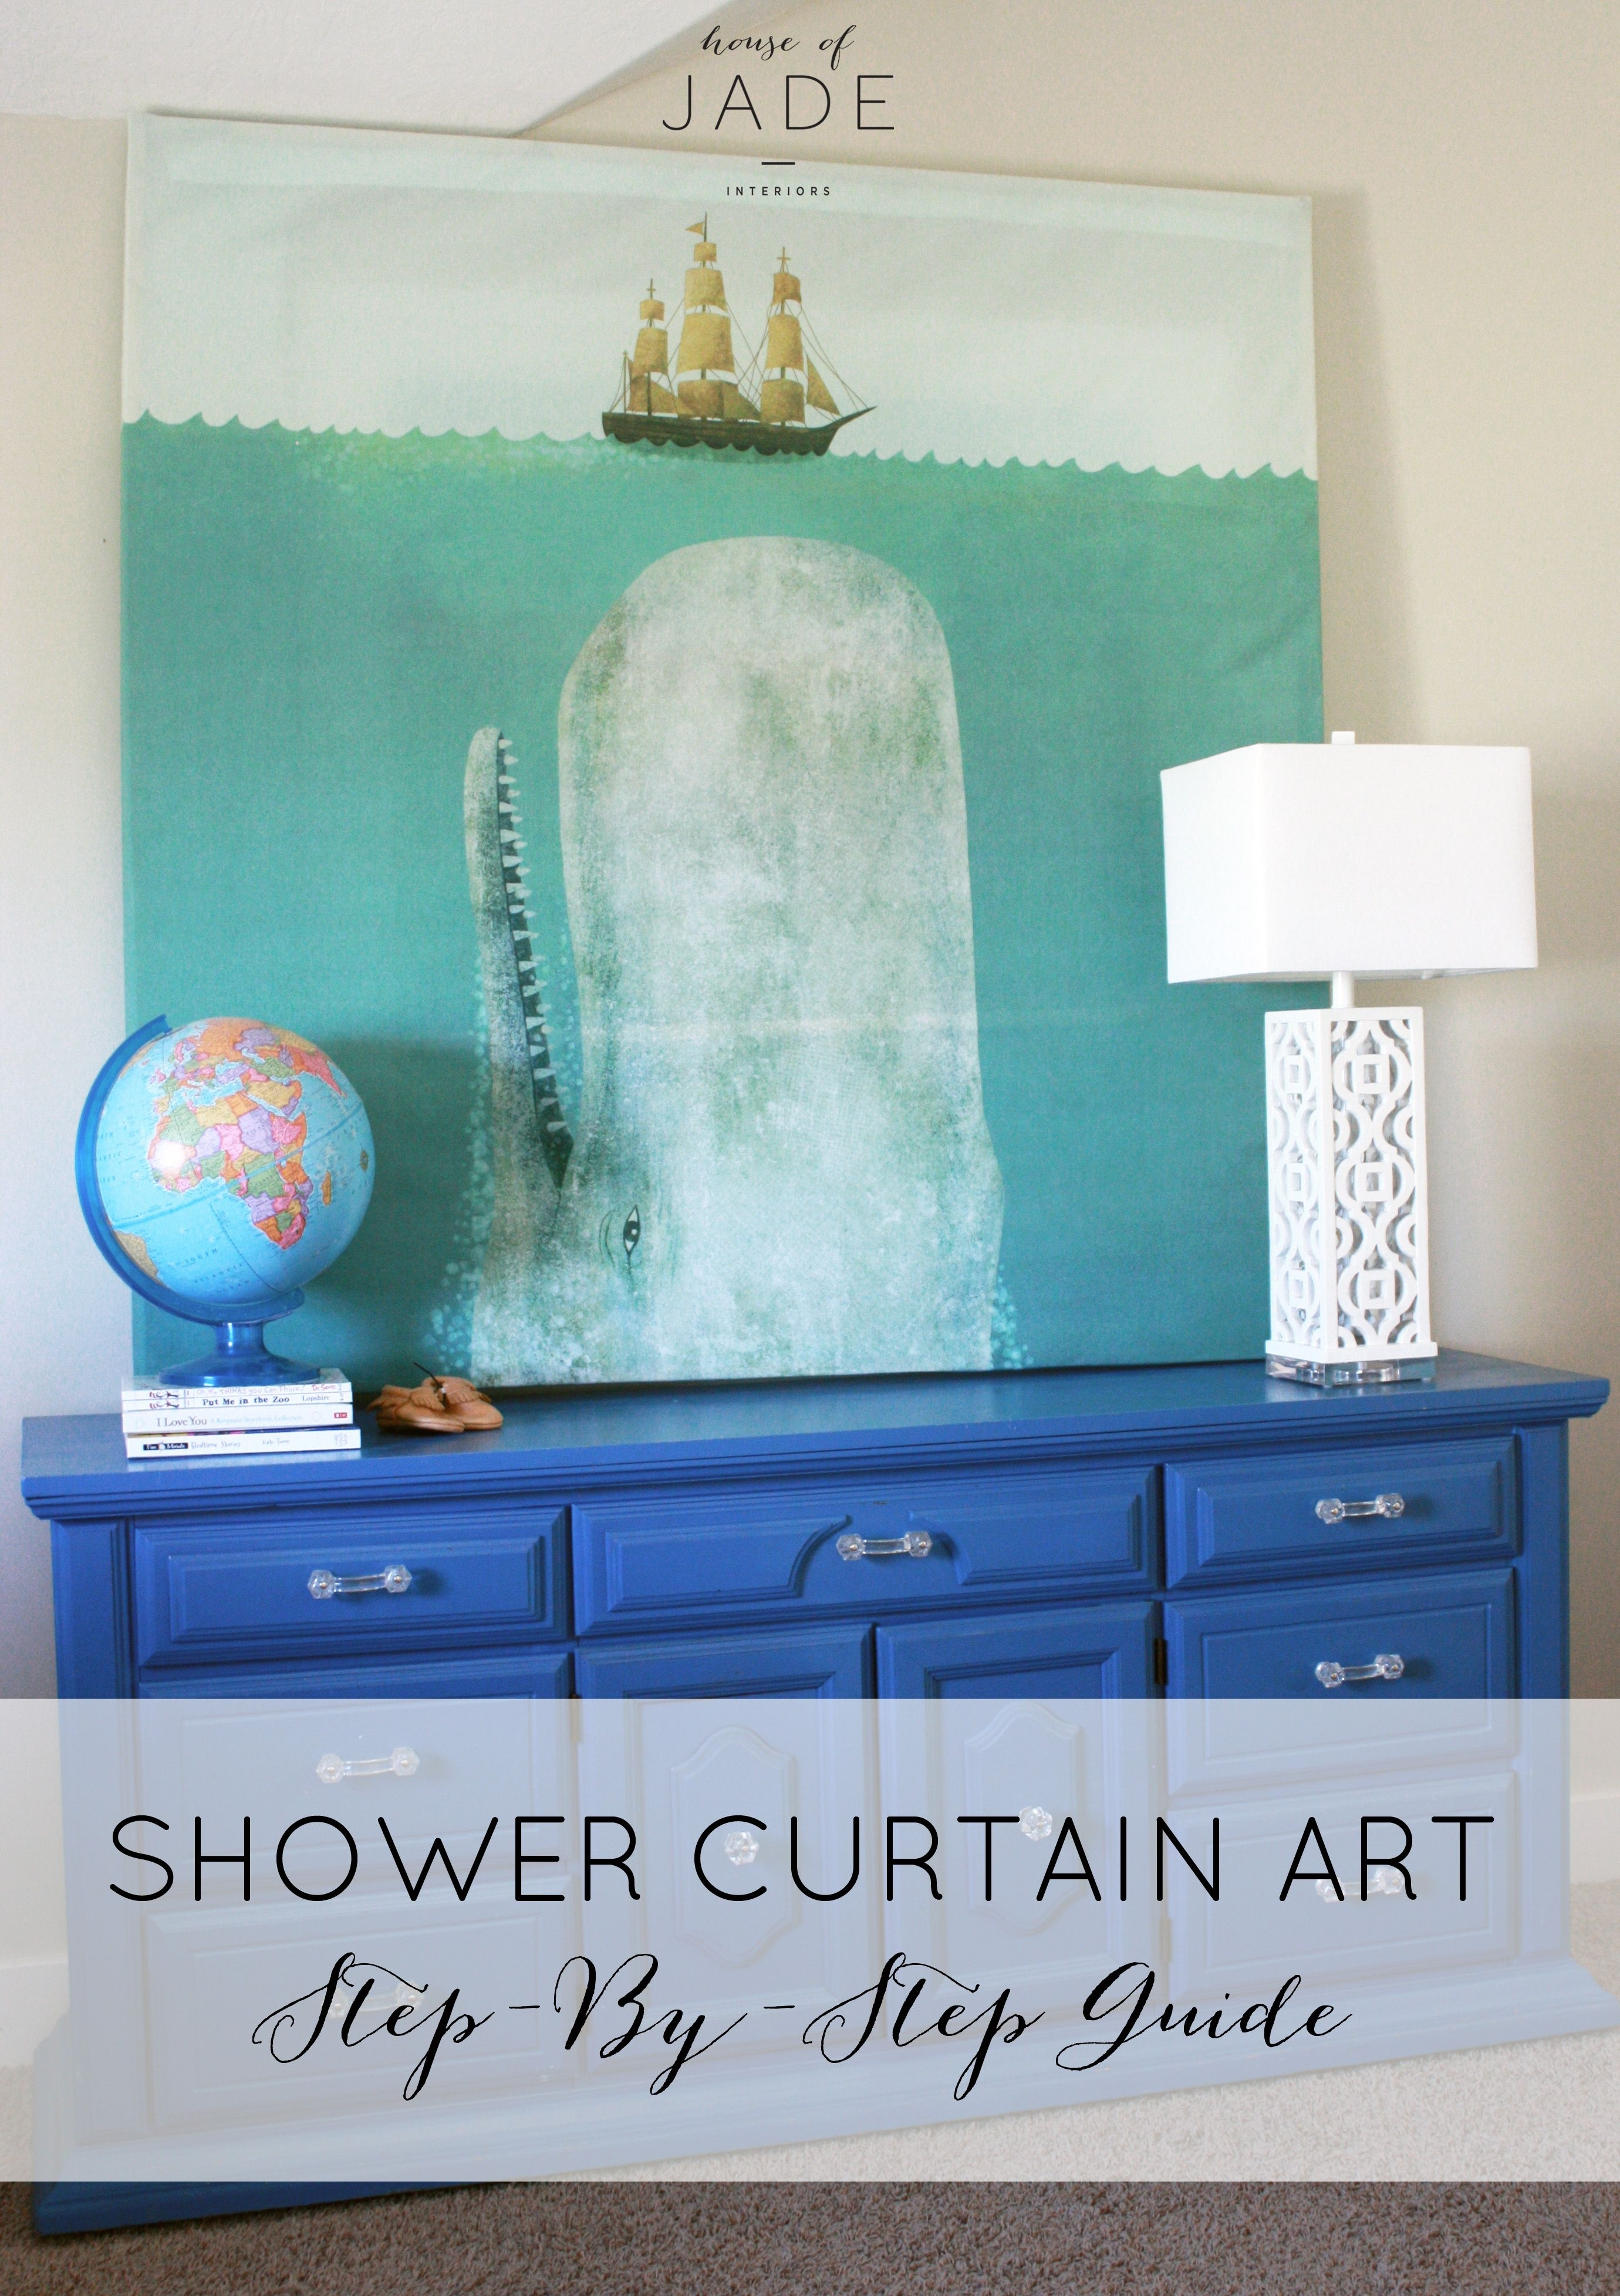 Diy Shower Curtain Art3 | Make It At Home | Pinterest | Diy Shower regarding Shower Curtain Wall Art (Image 9 of 20)